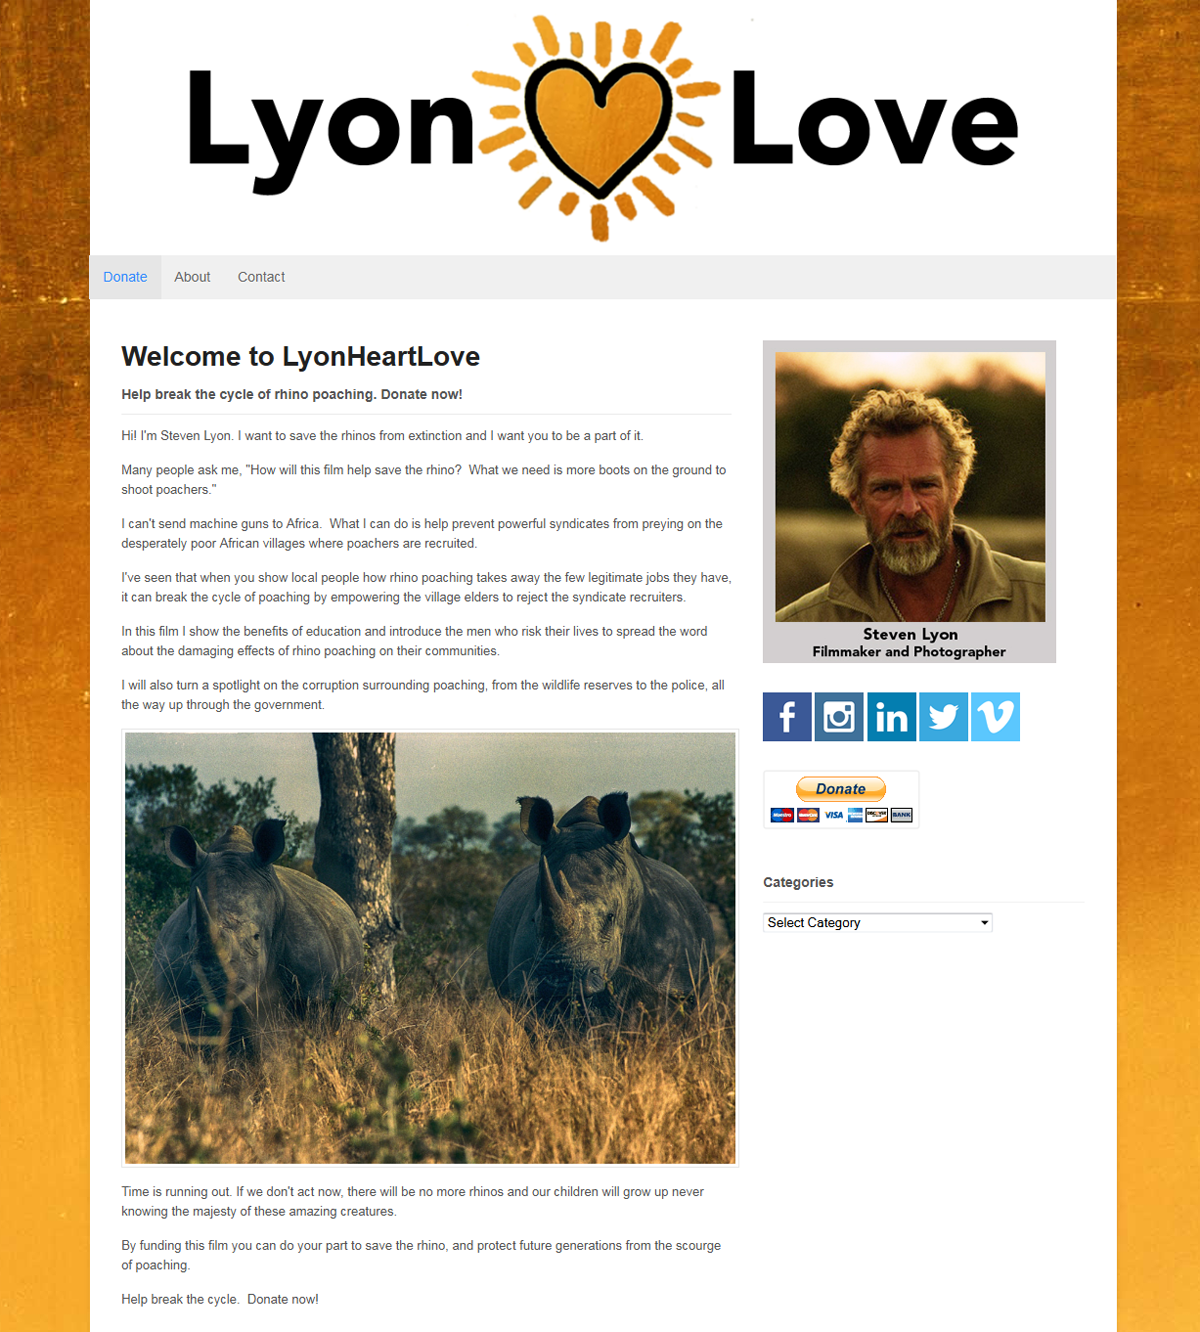 Lyon Heart Love-1200-2